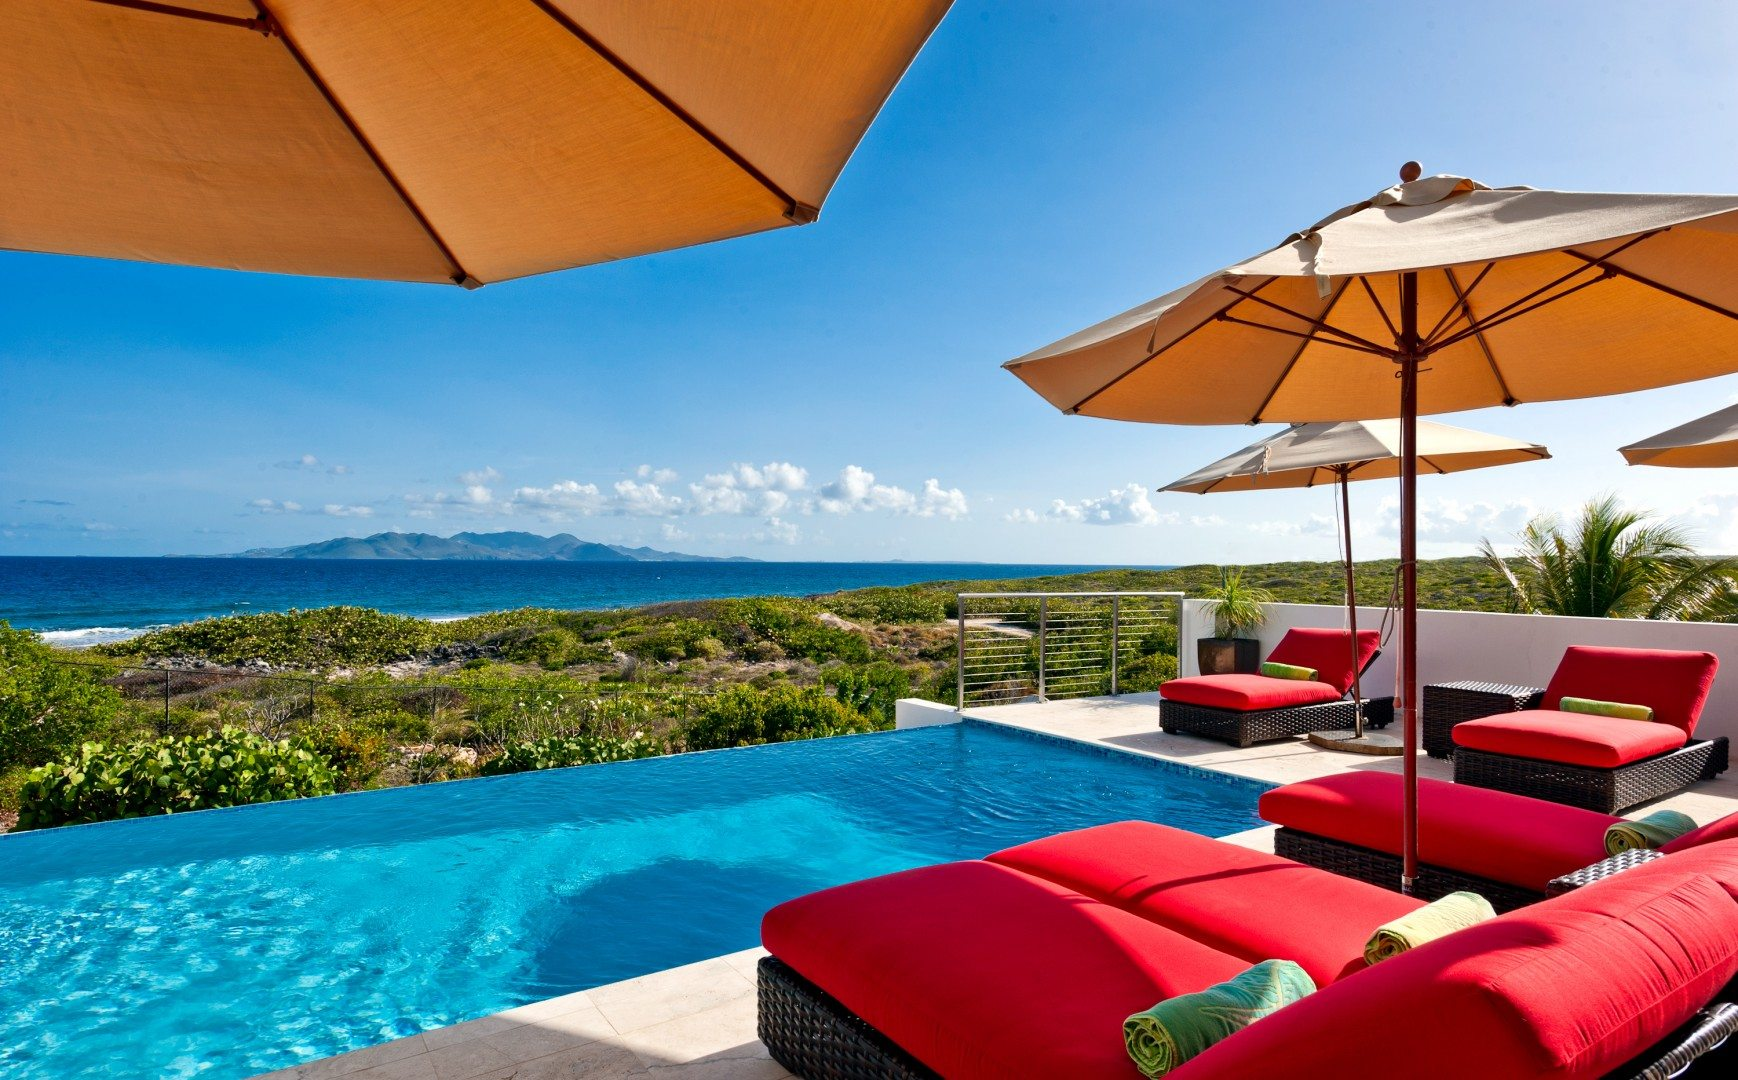 Luxury-Villa-Pool-Anguilla-Ricketts-Luxury-Properties-UltraVilla